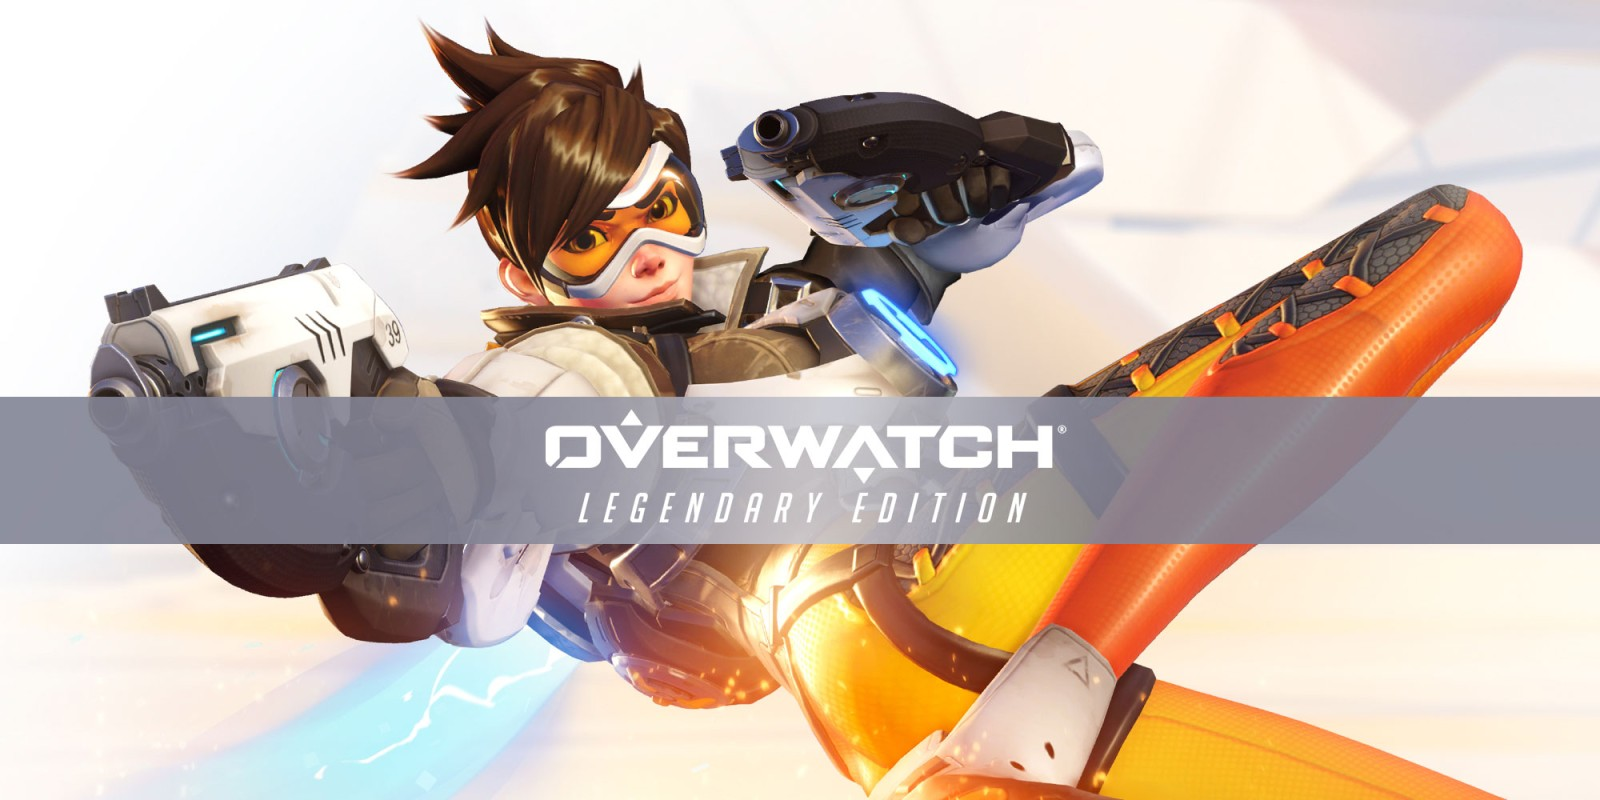 Overwatch: Legendary Edition